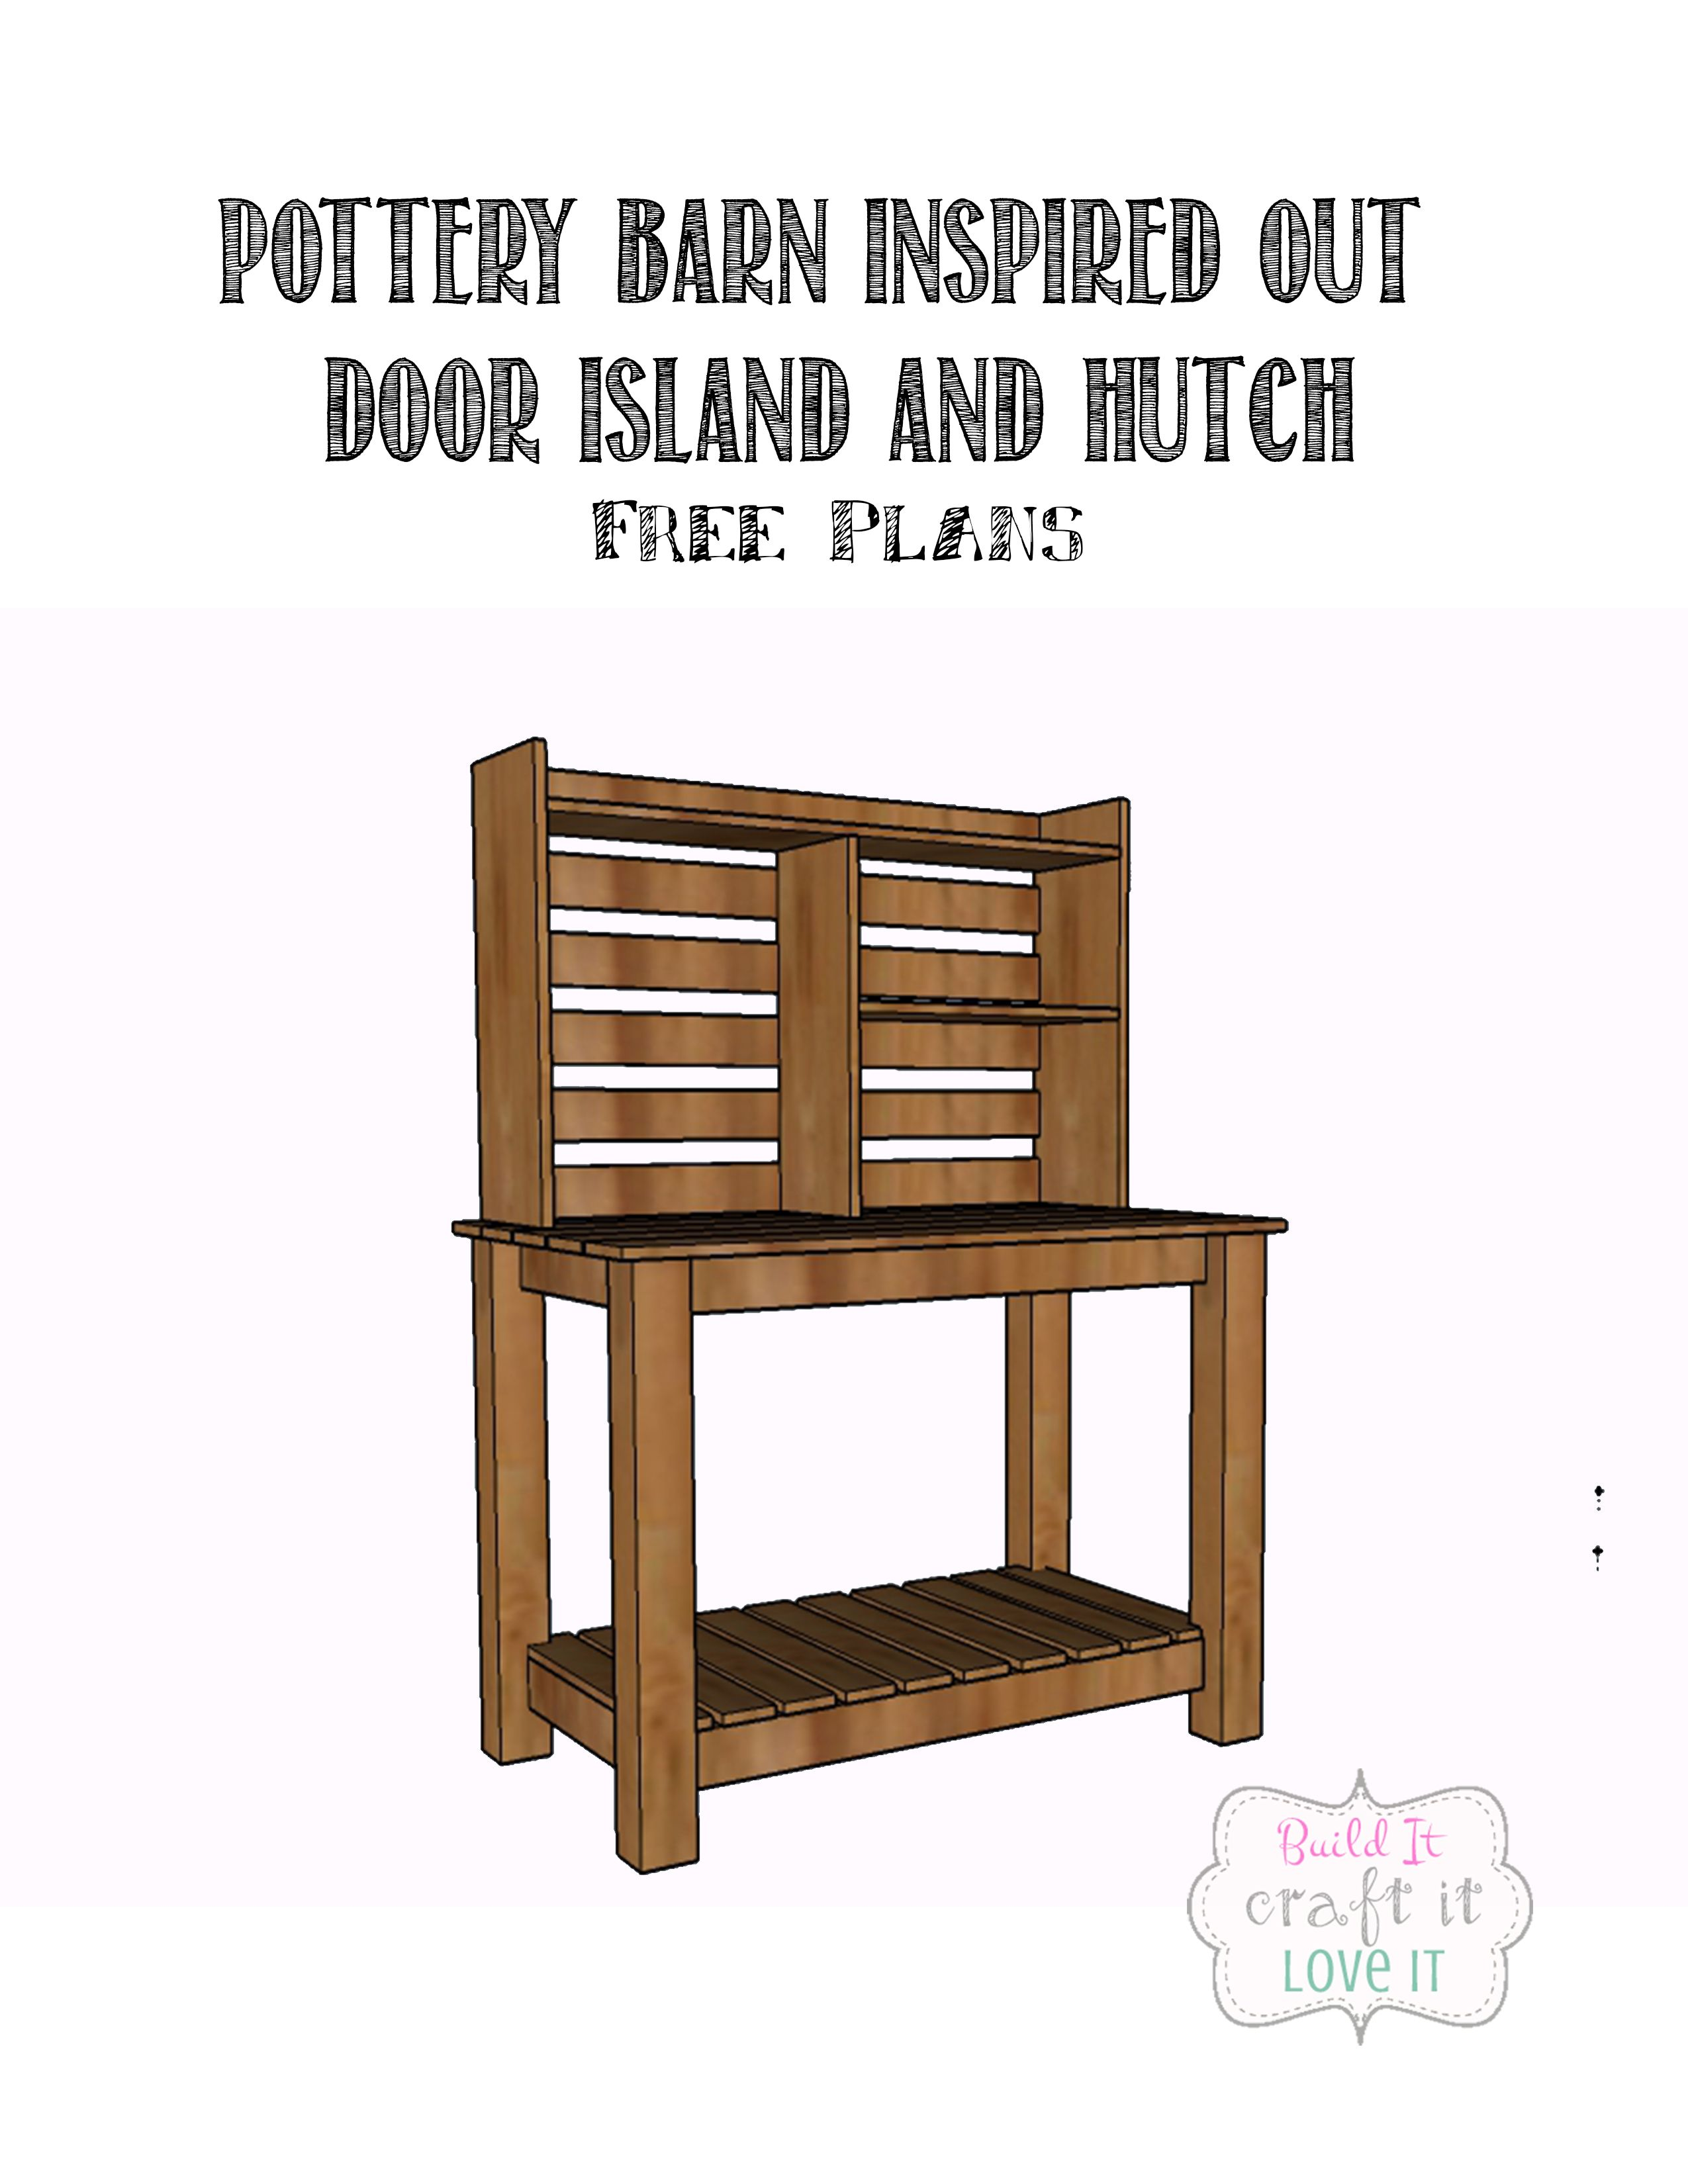 free plans to build this outdoor island and hutch build it craft rh pinterest com